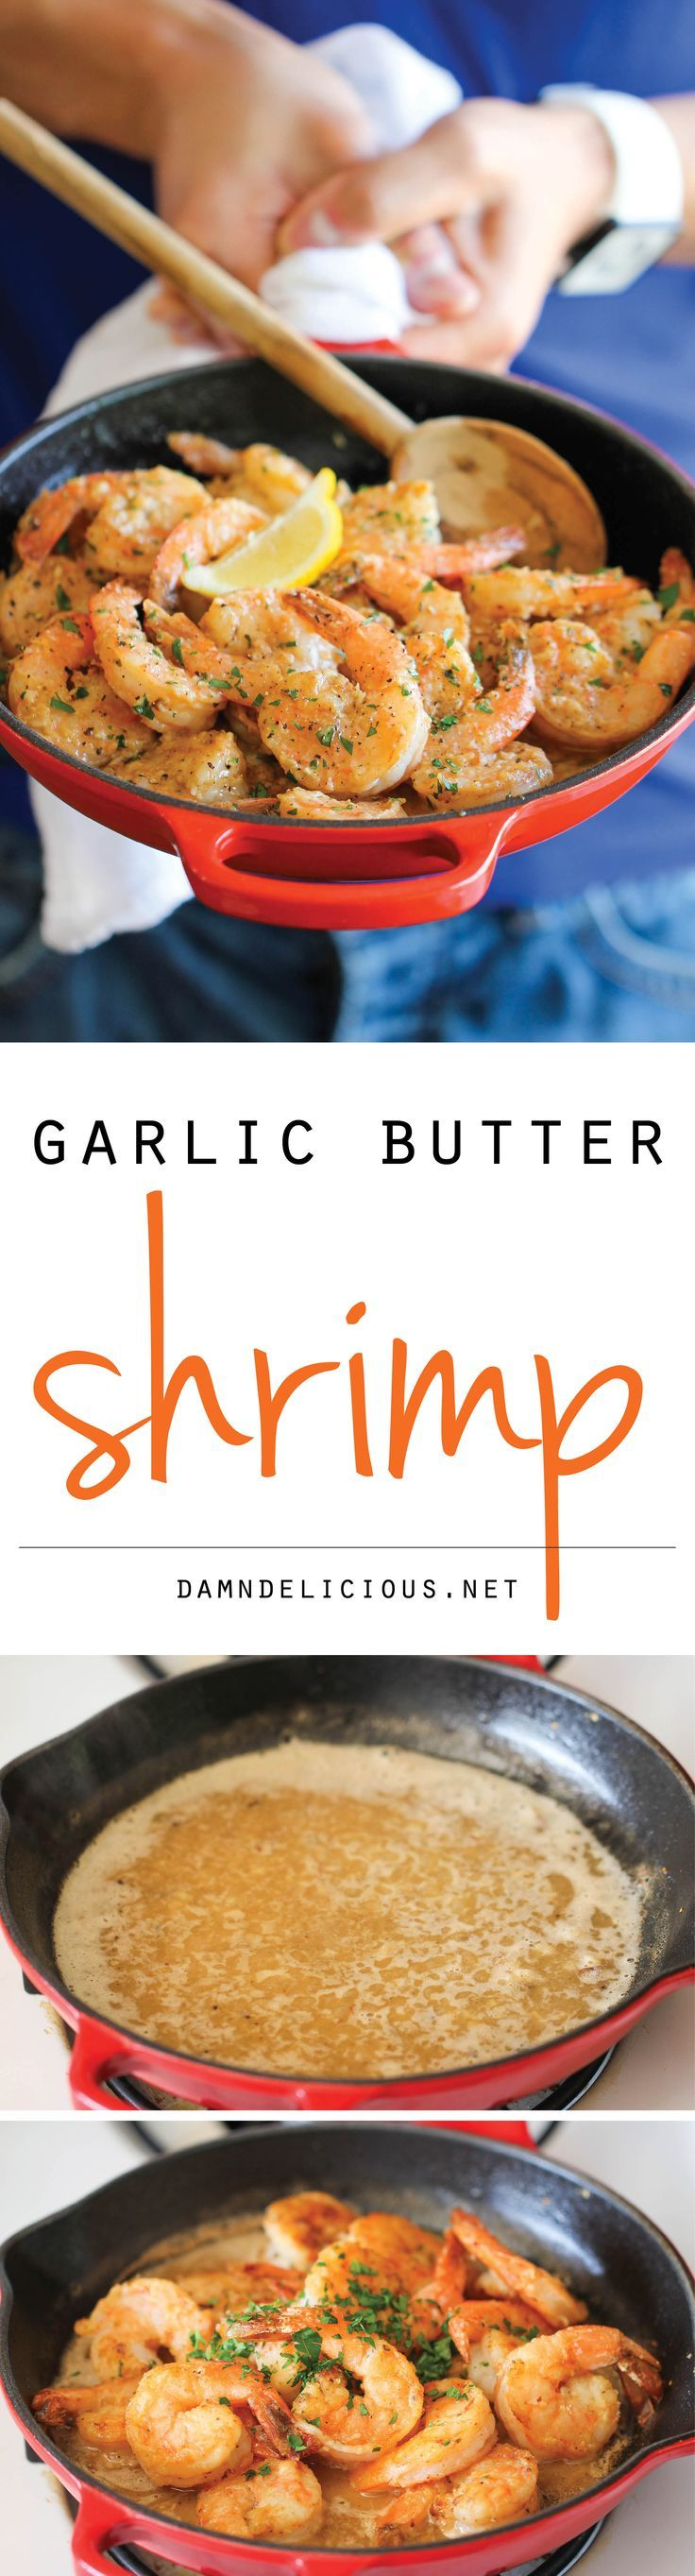 Garlic Butter Shrimp - An amazing flavor combination of garlicky, buttery goodness - so elegant and easy to make in 20 min or less!